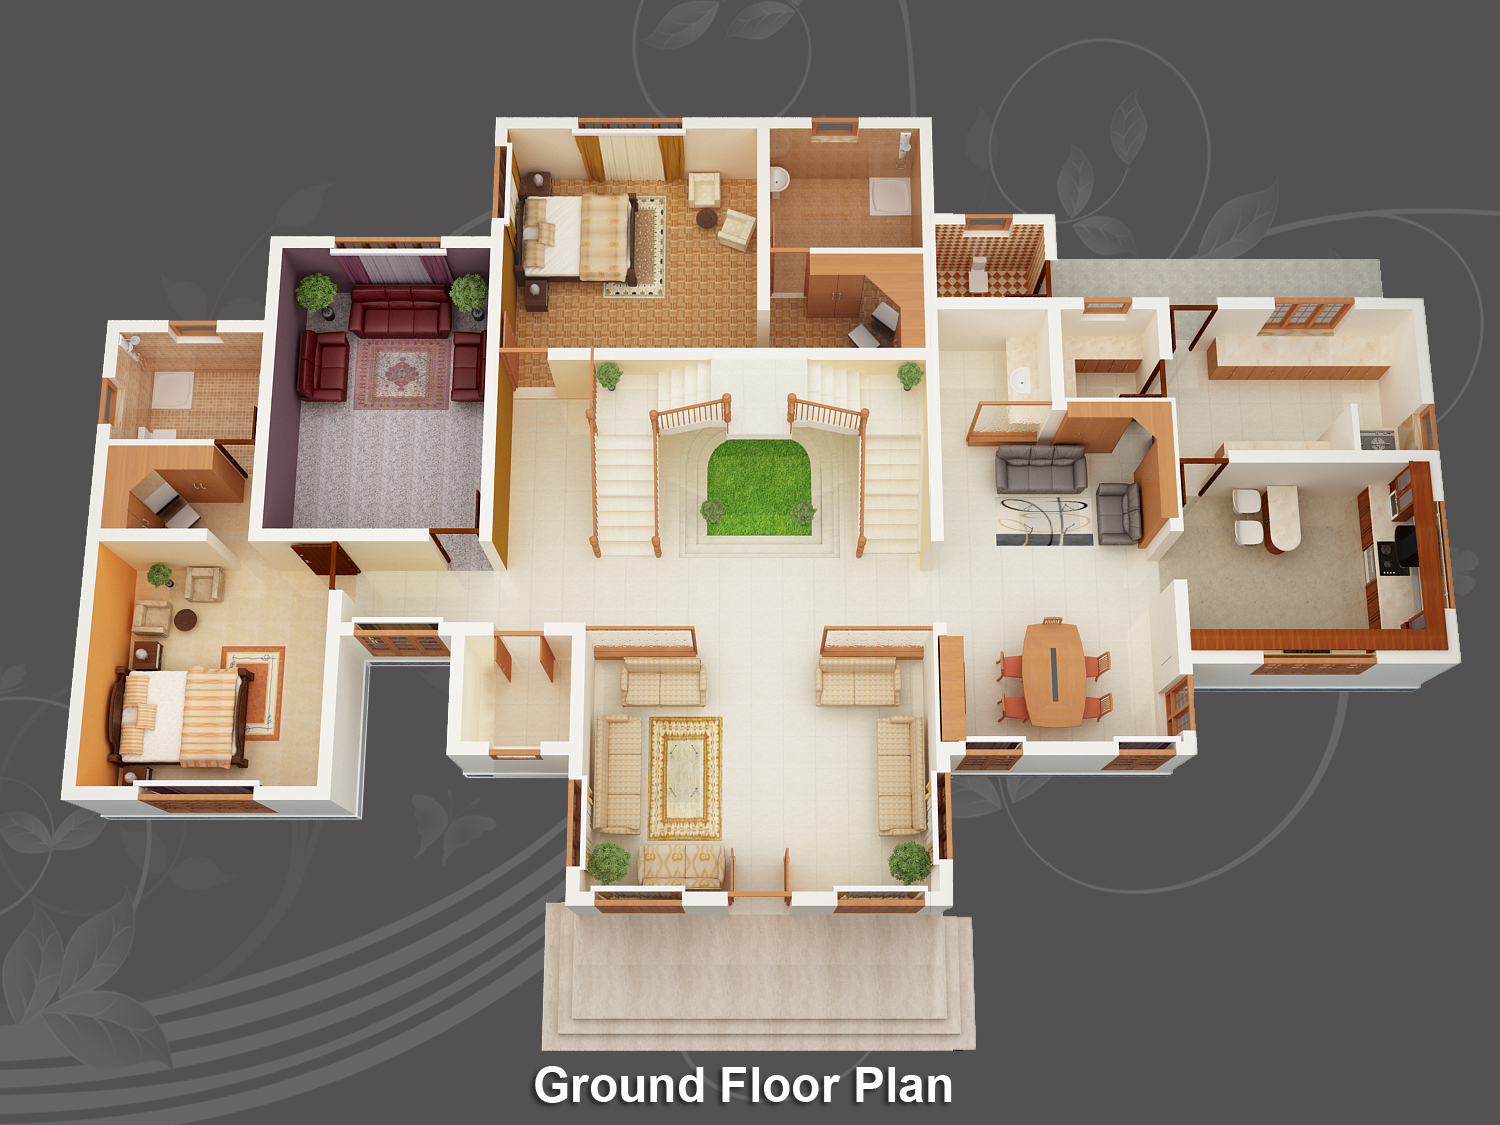 Evens construction pvt ltd 3d house plan 20 05 2011 Design home free